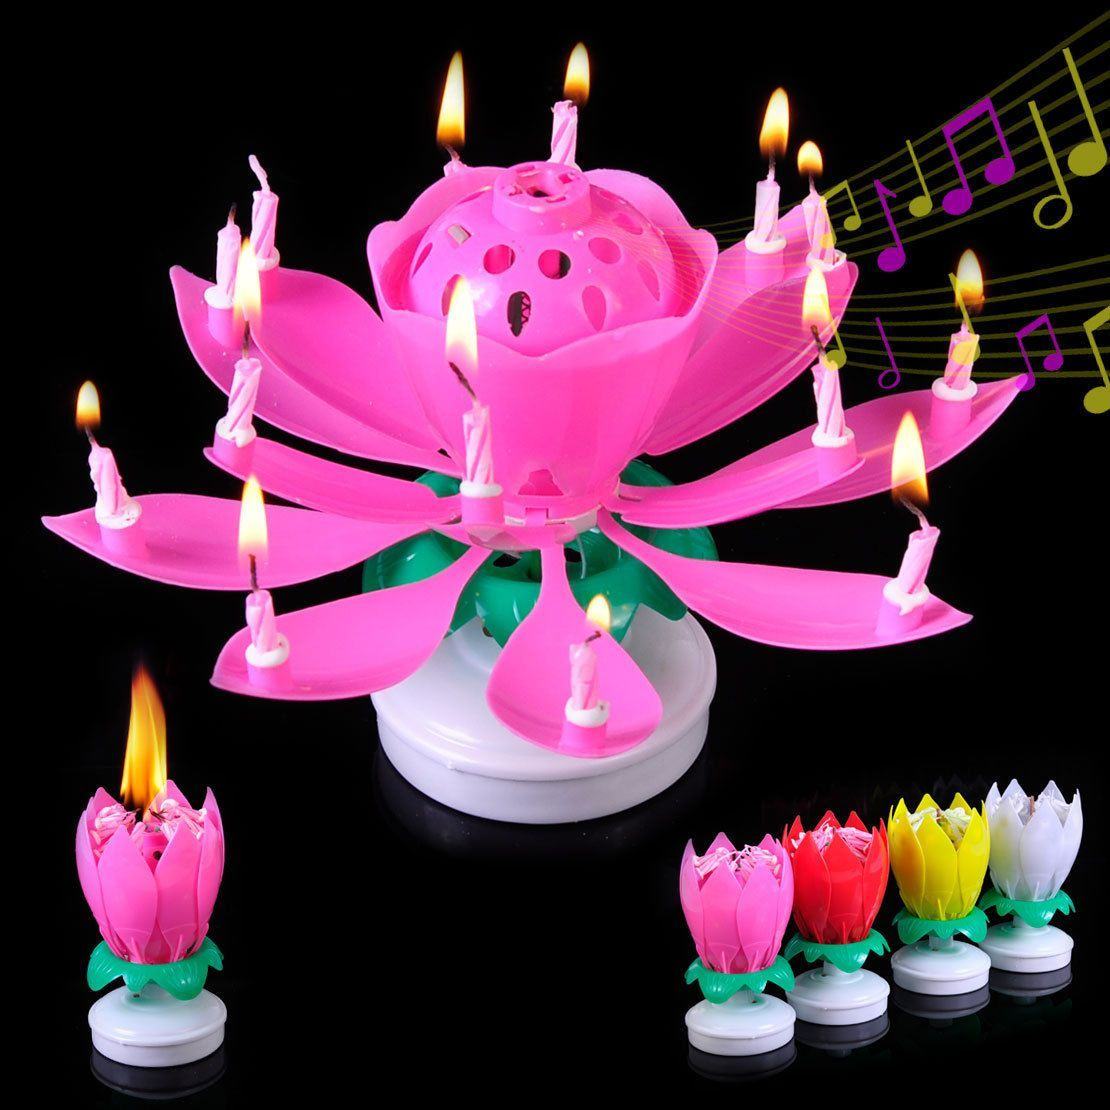 Music Lotus Candle Happy Birthday Rotating Lights Flower Amazing